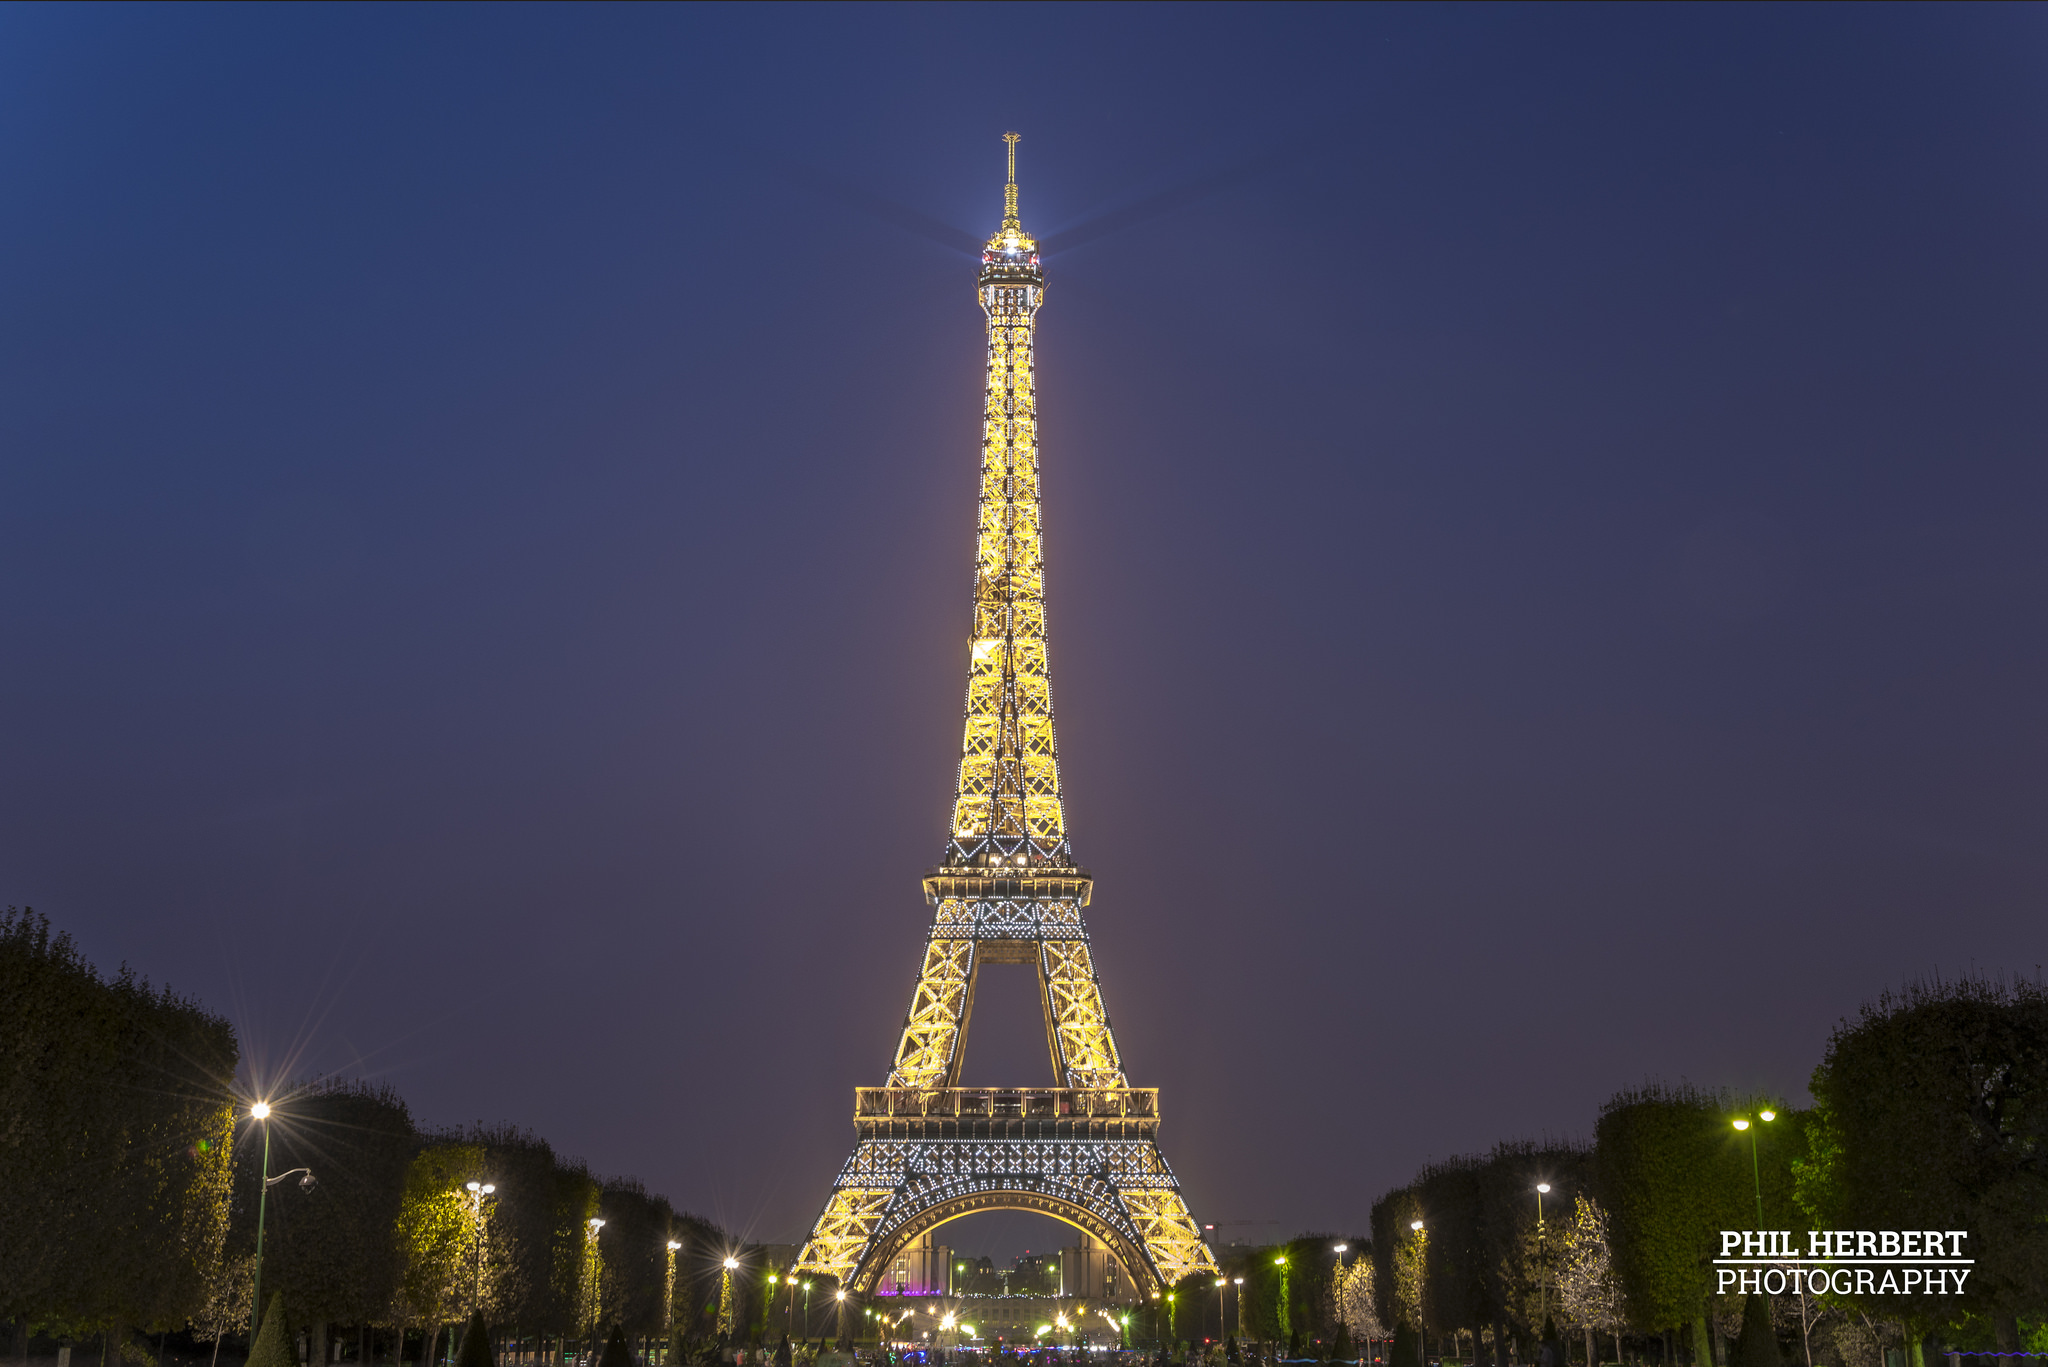 Phil_Herbert_Paris_Eifel_Tower.jpg